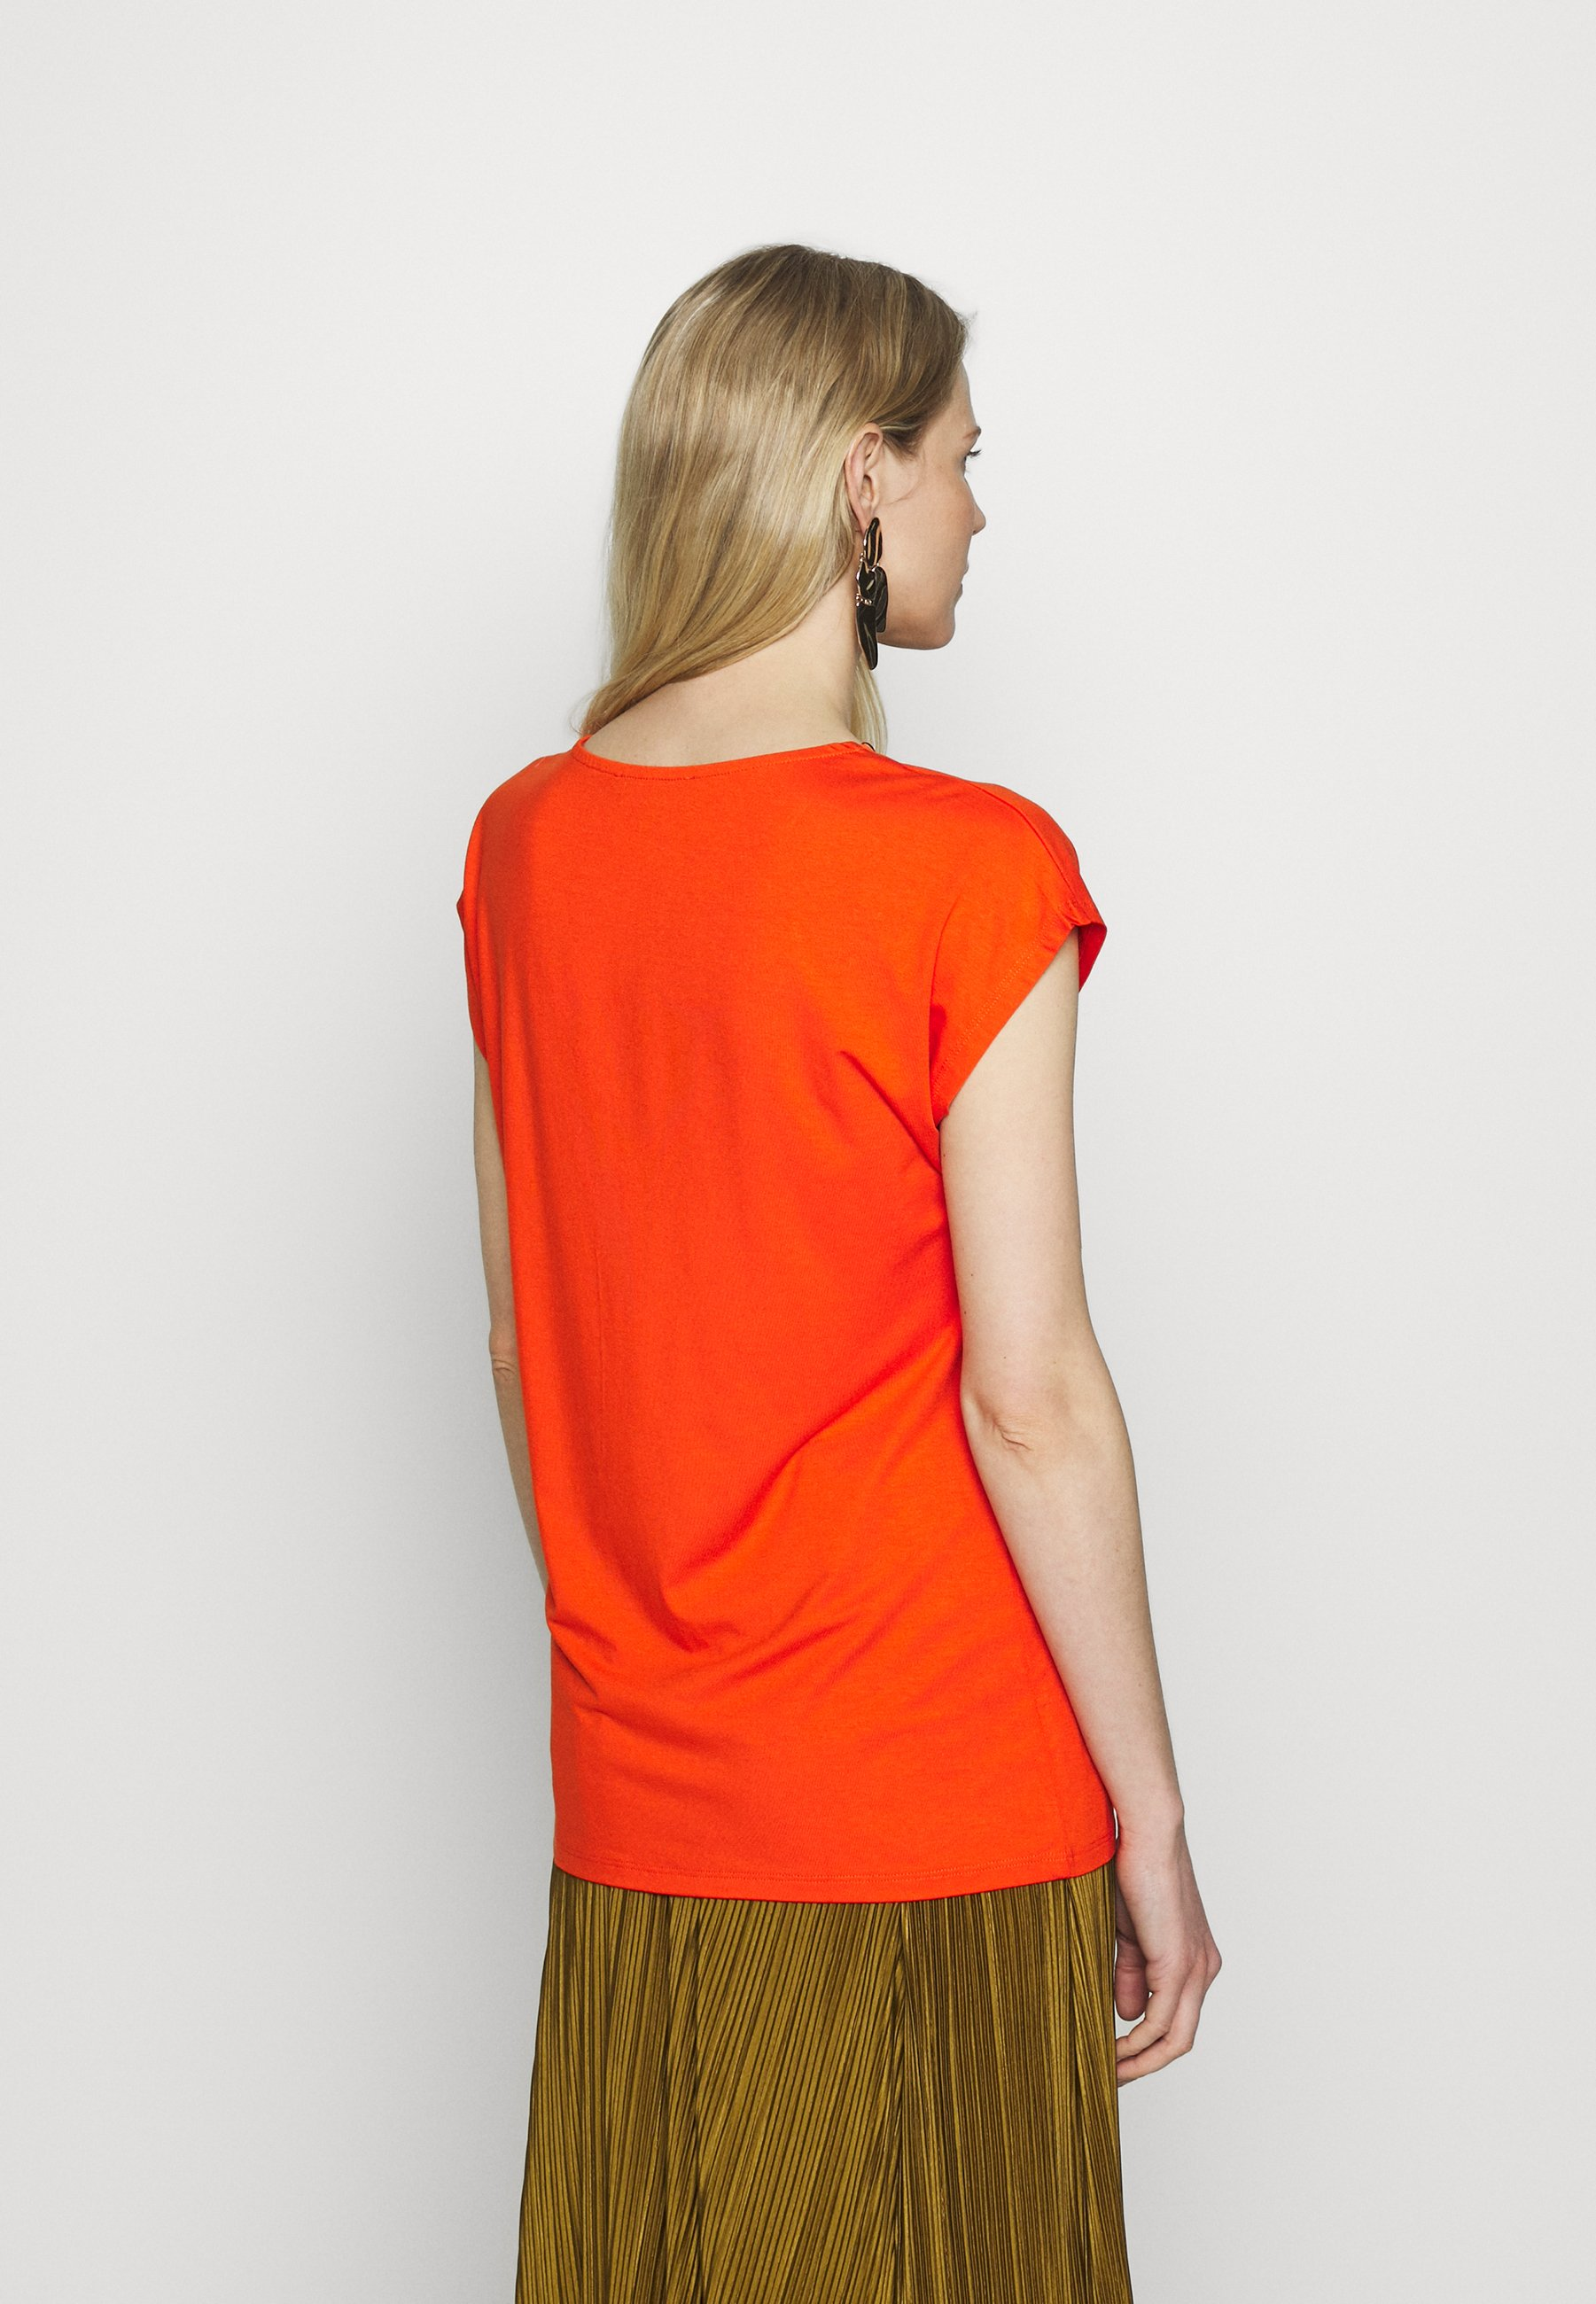 Esprit Collection T-shirts - red orange